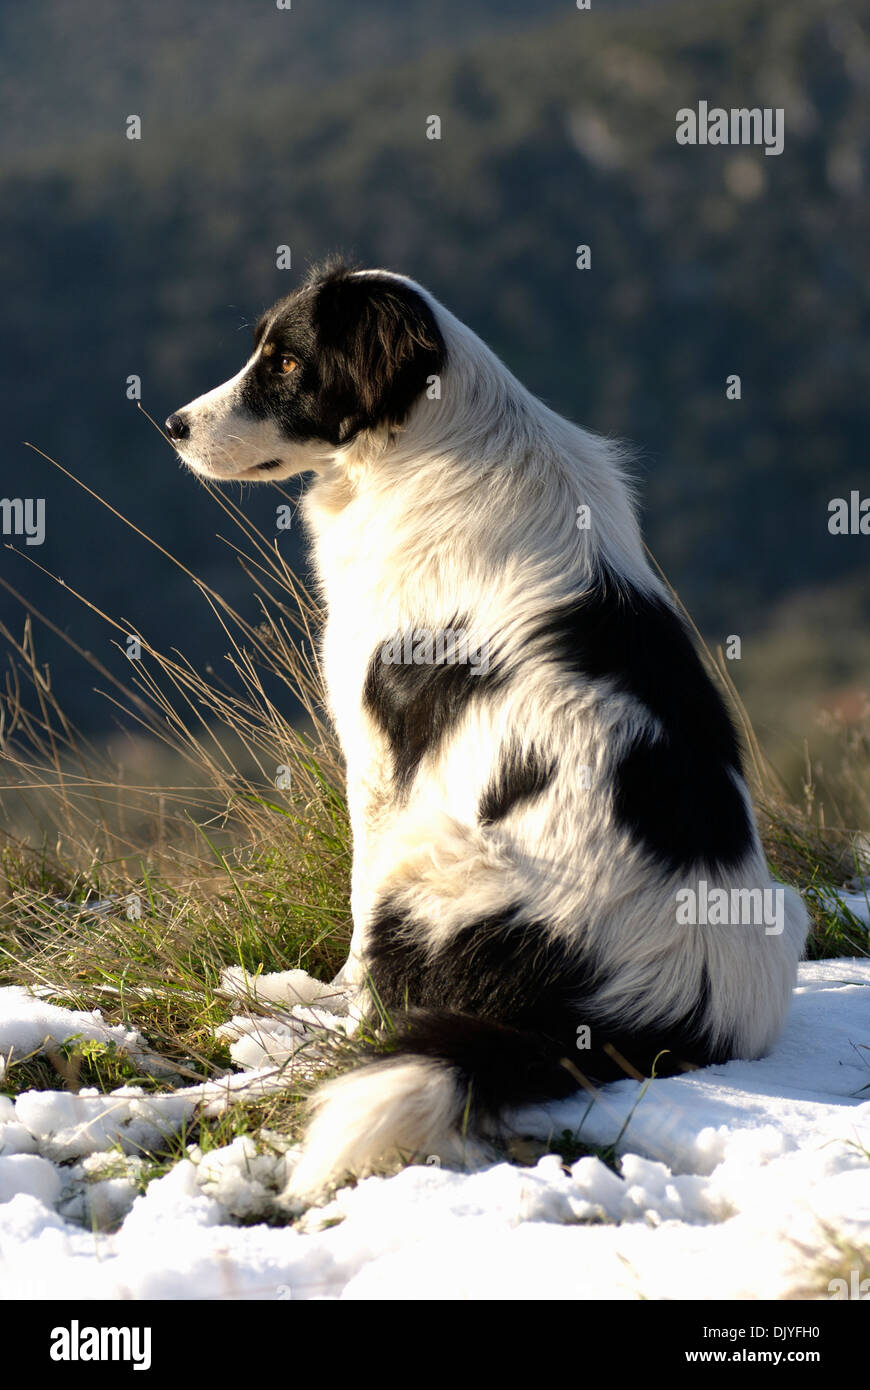 Border Collie sitting in snowy field - Stock Image